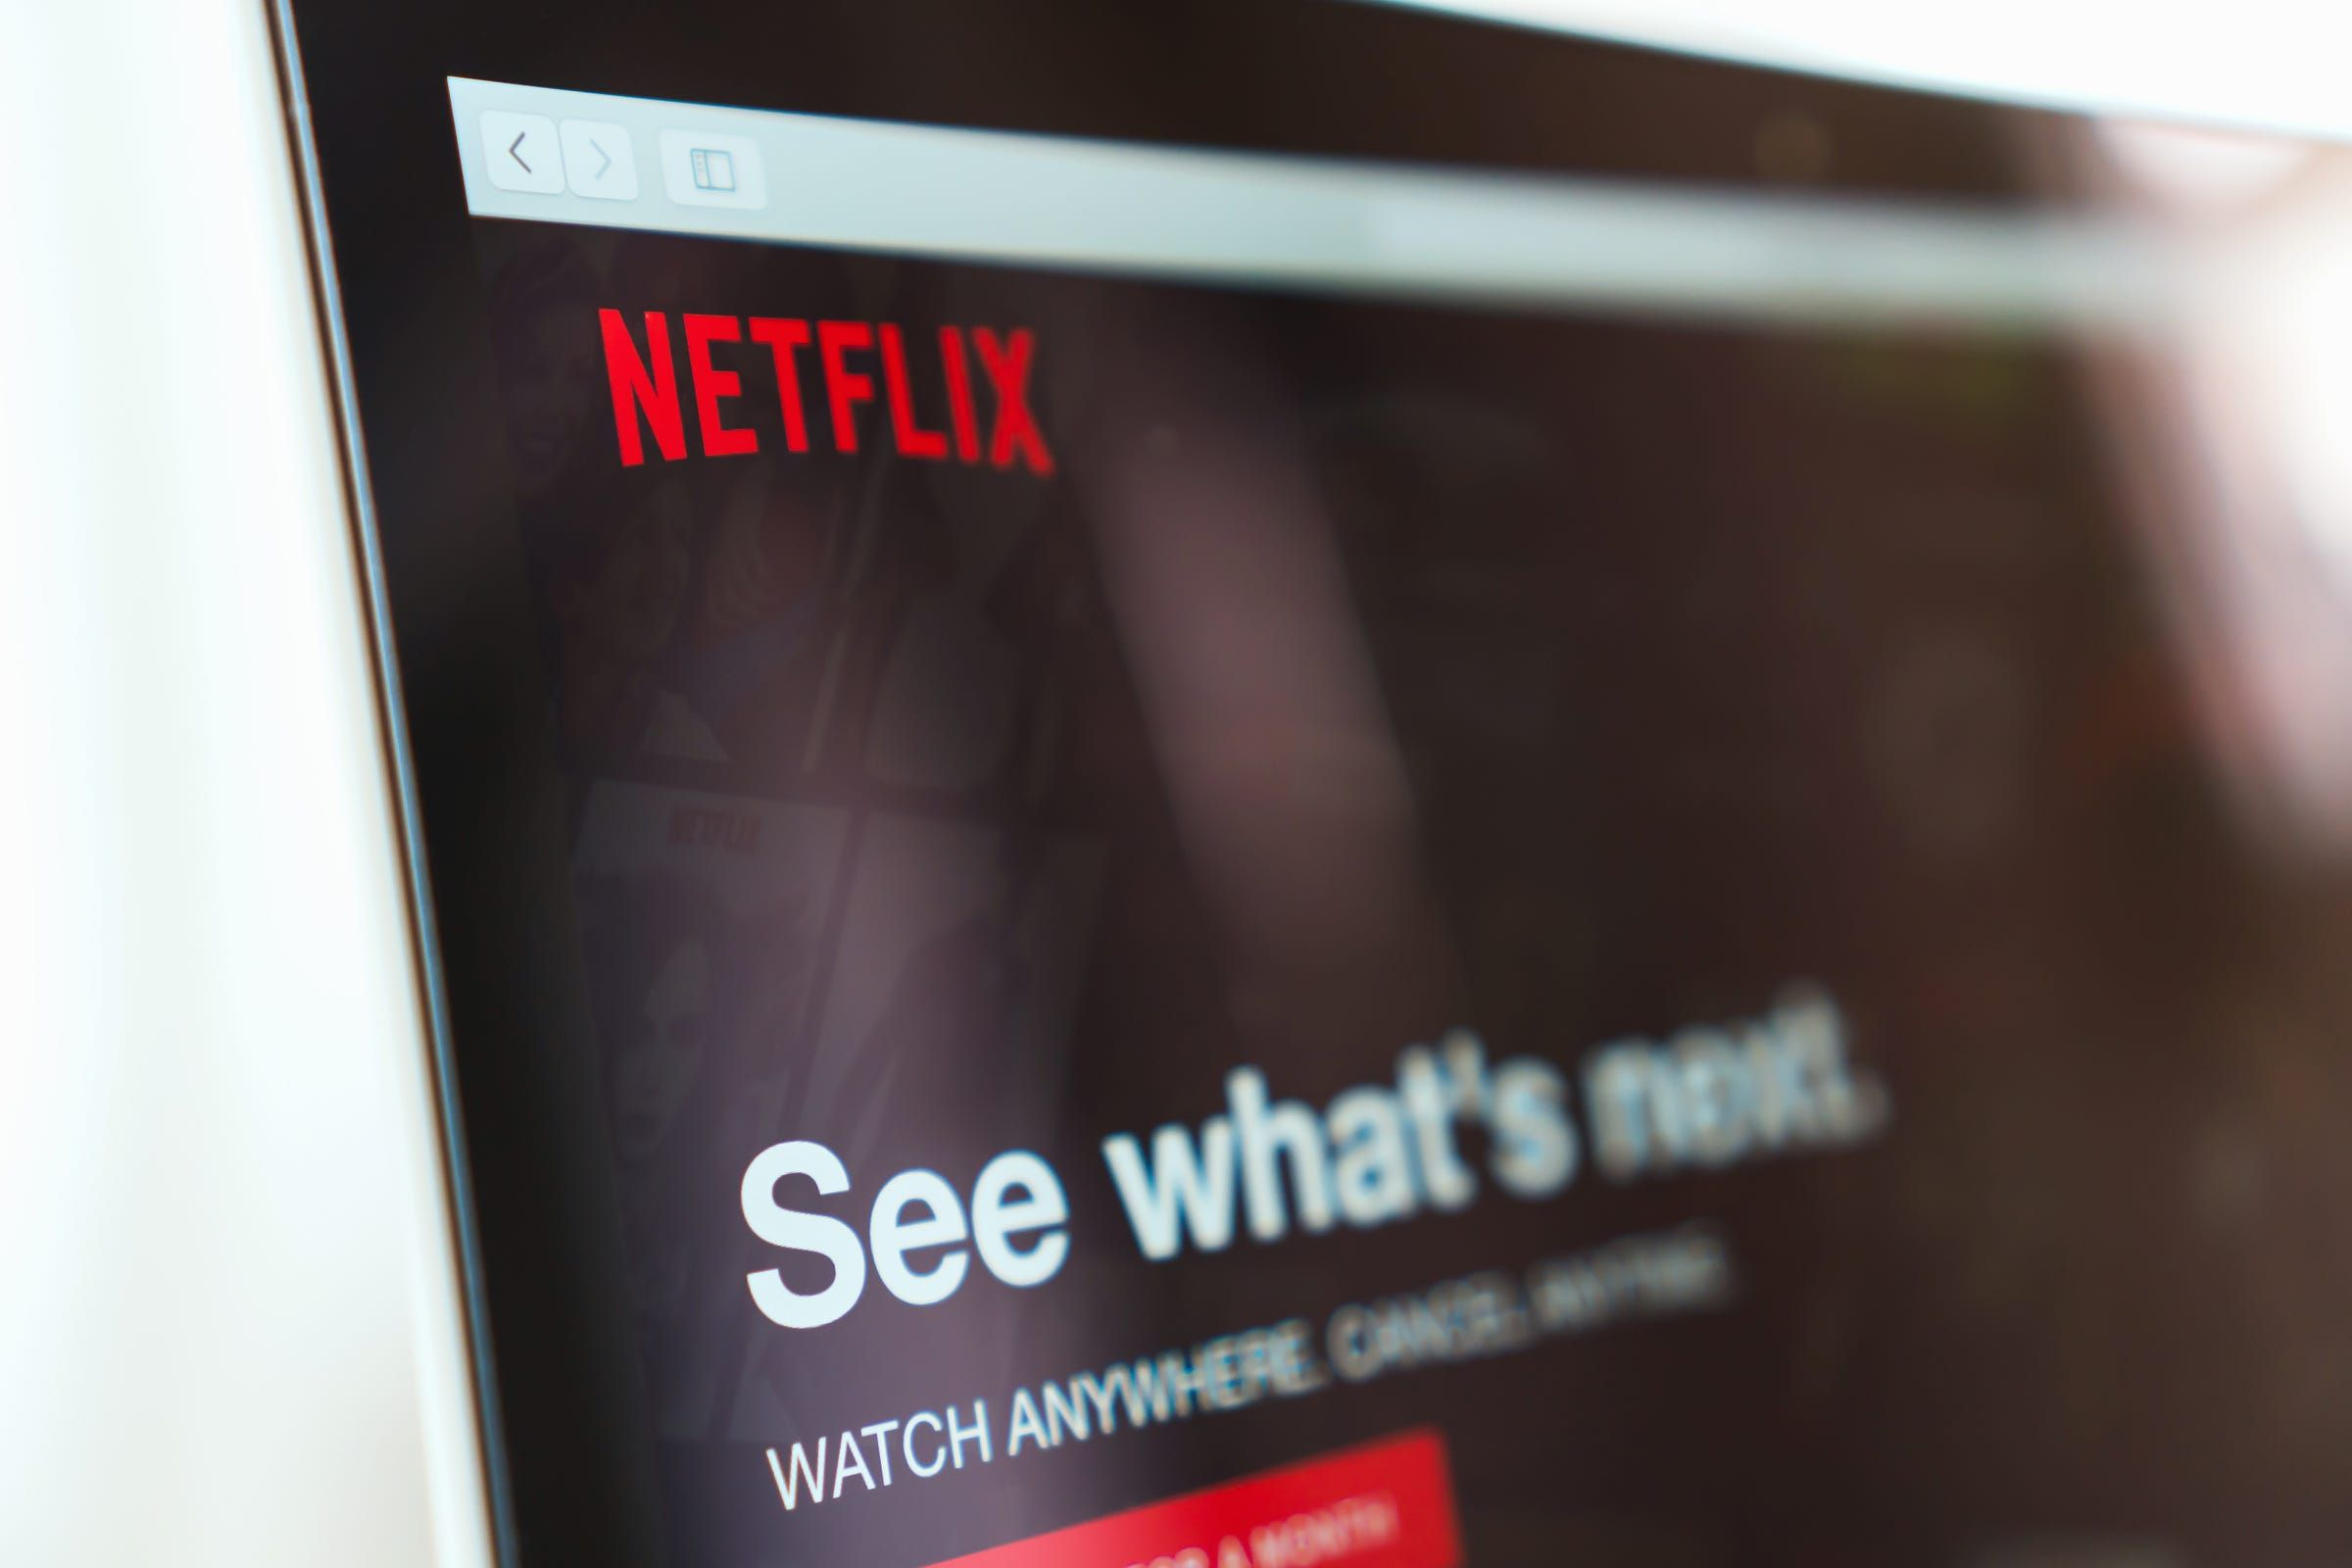 How to remove a device from your Netflix account in 5